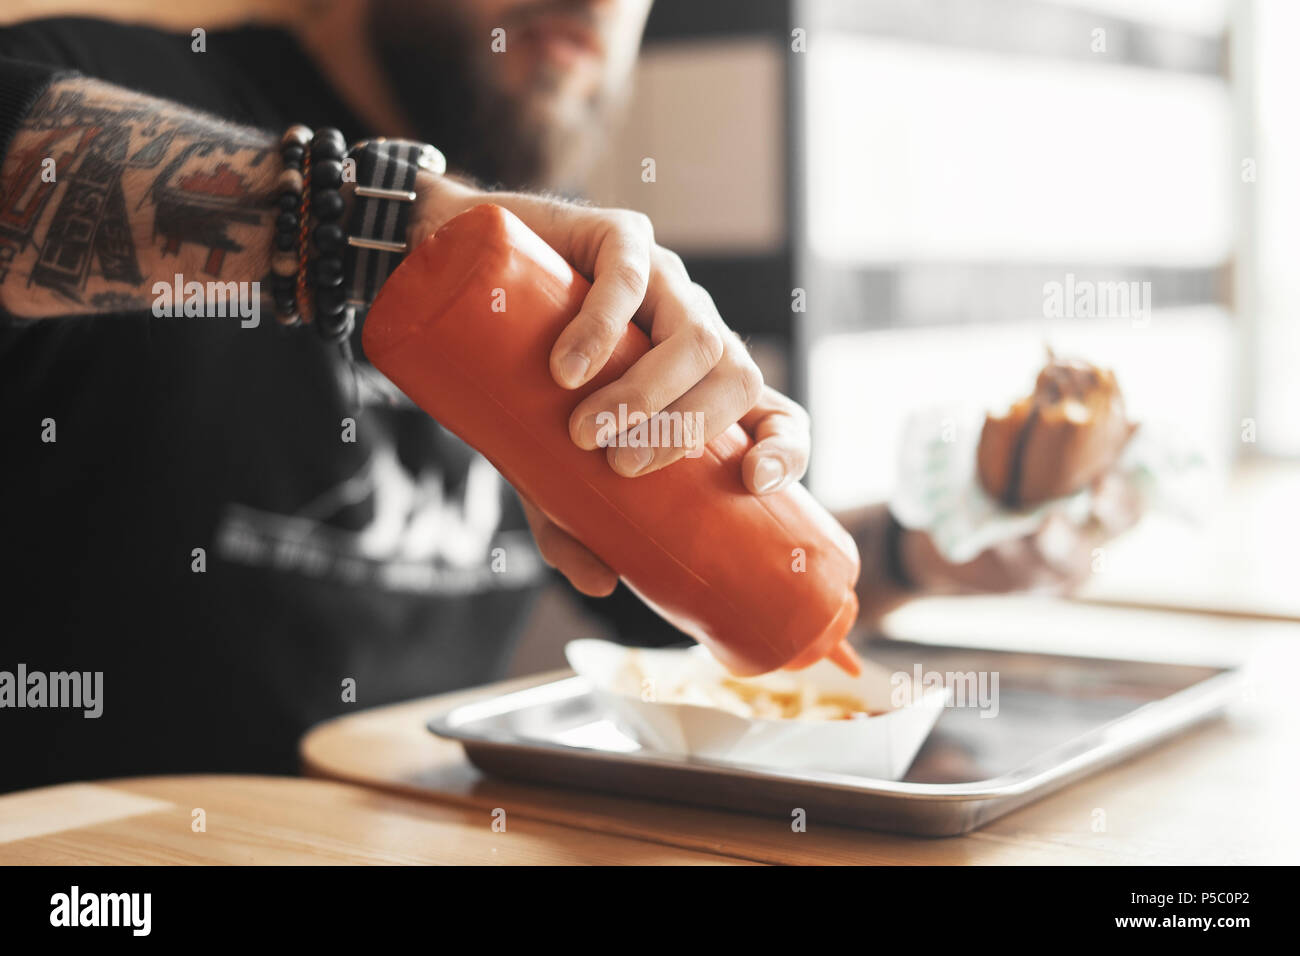 Young bearded man pours ketchup on french fries close up. - Stock Image